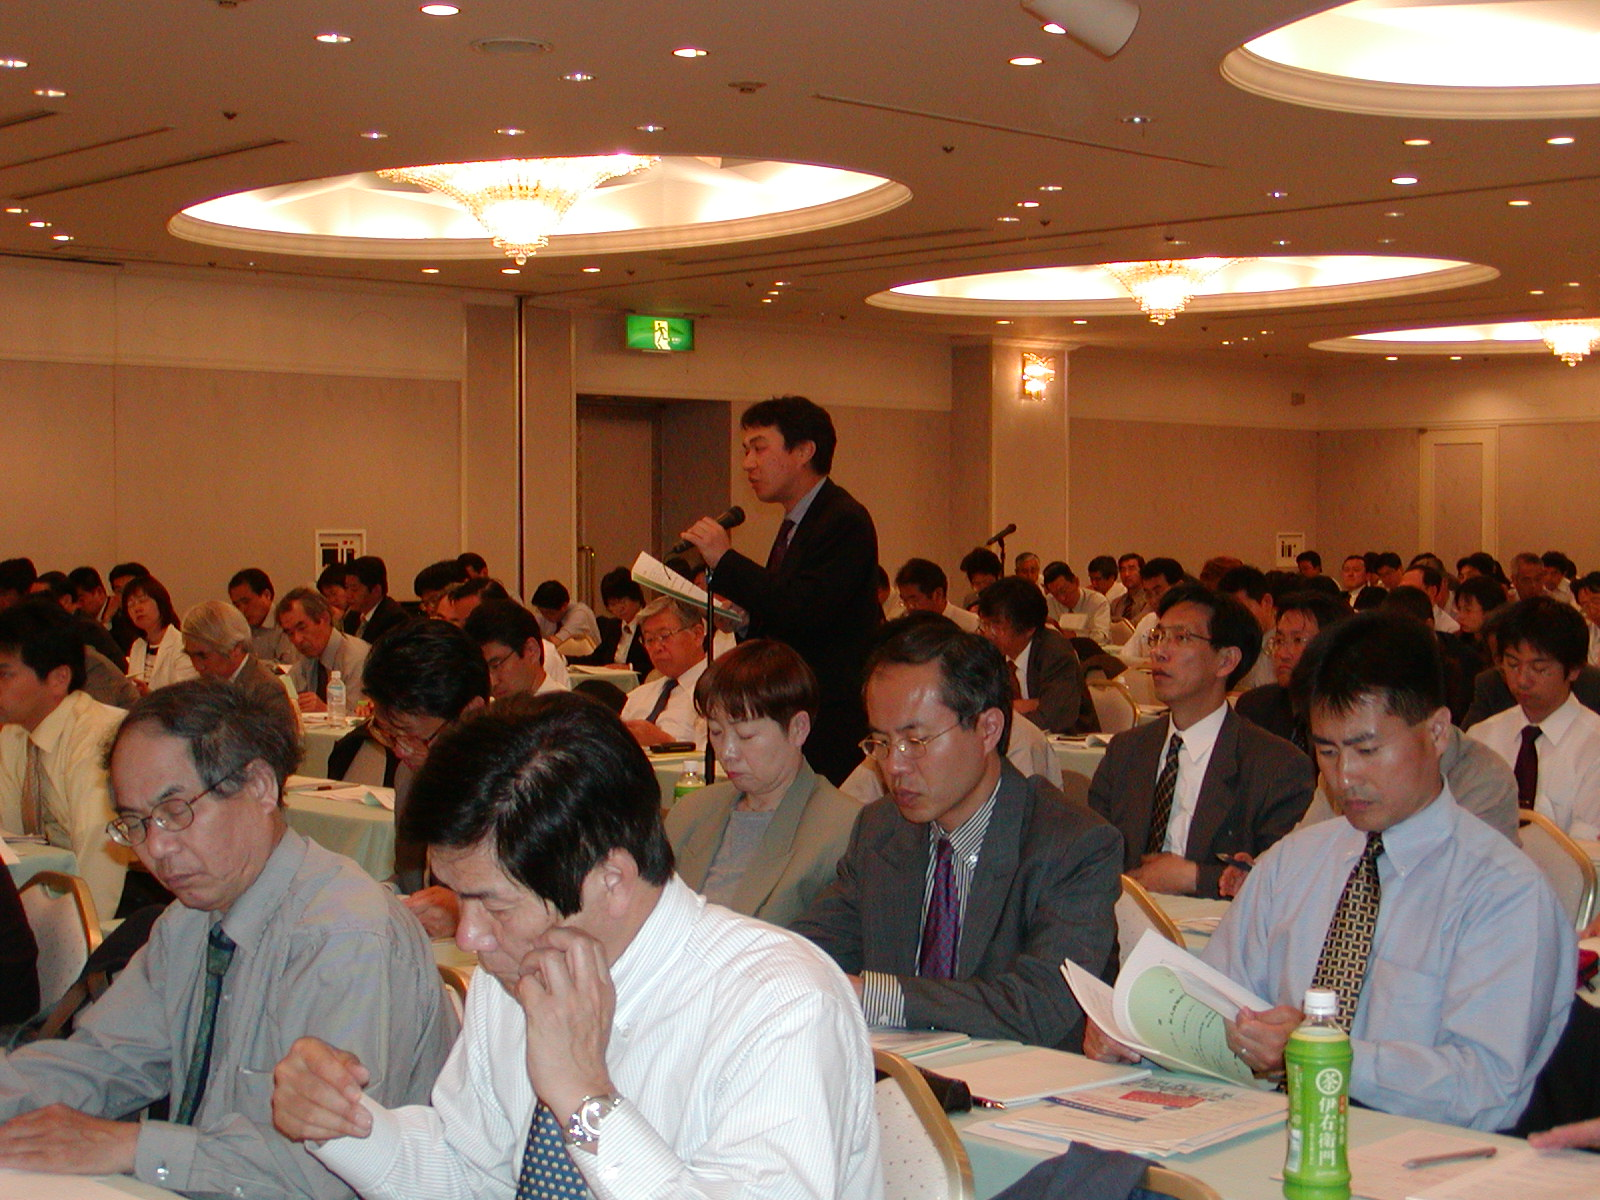 Photo: Attendees remarked on such issues as employment, local economies, long-term care insurance, the tax system, and so forth. (May 7, Ikenohata Bunka Center, Tokyo.)